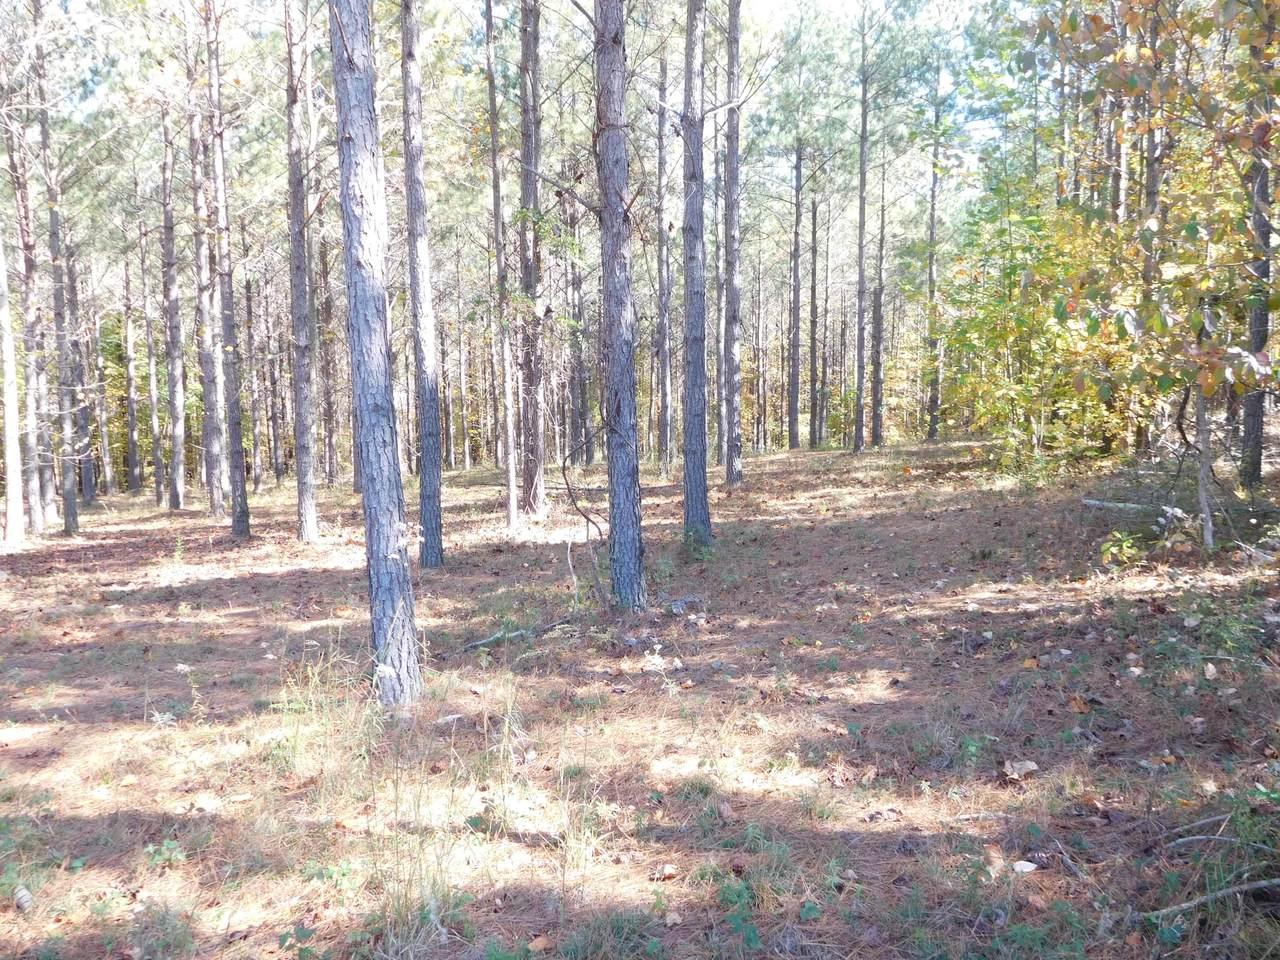 290 Compass Lot 229A Dr - Photo 1